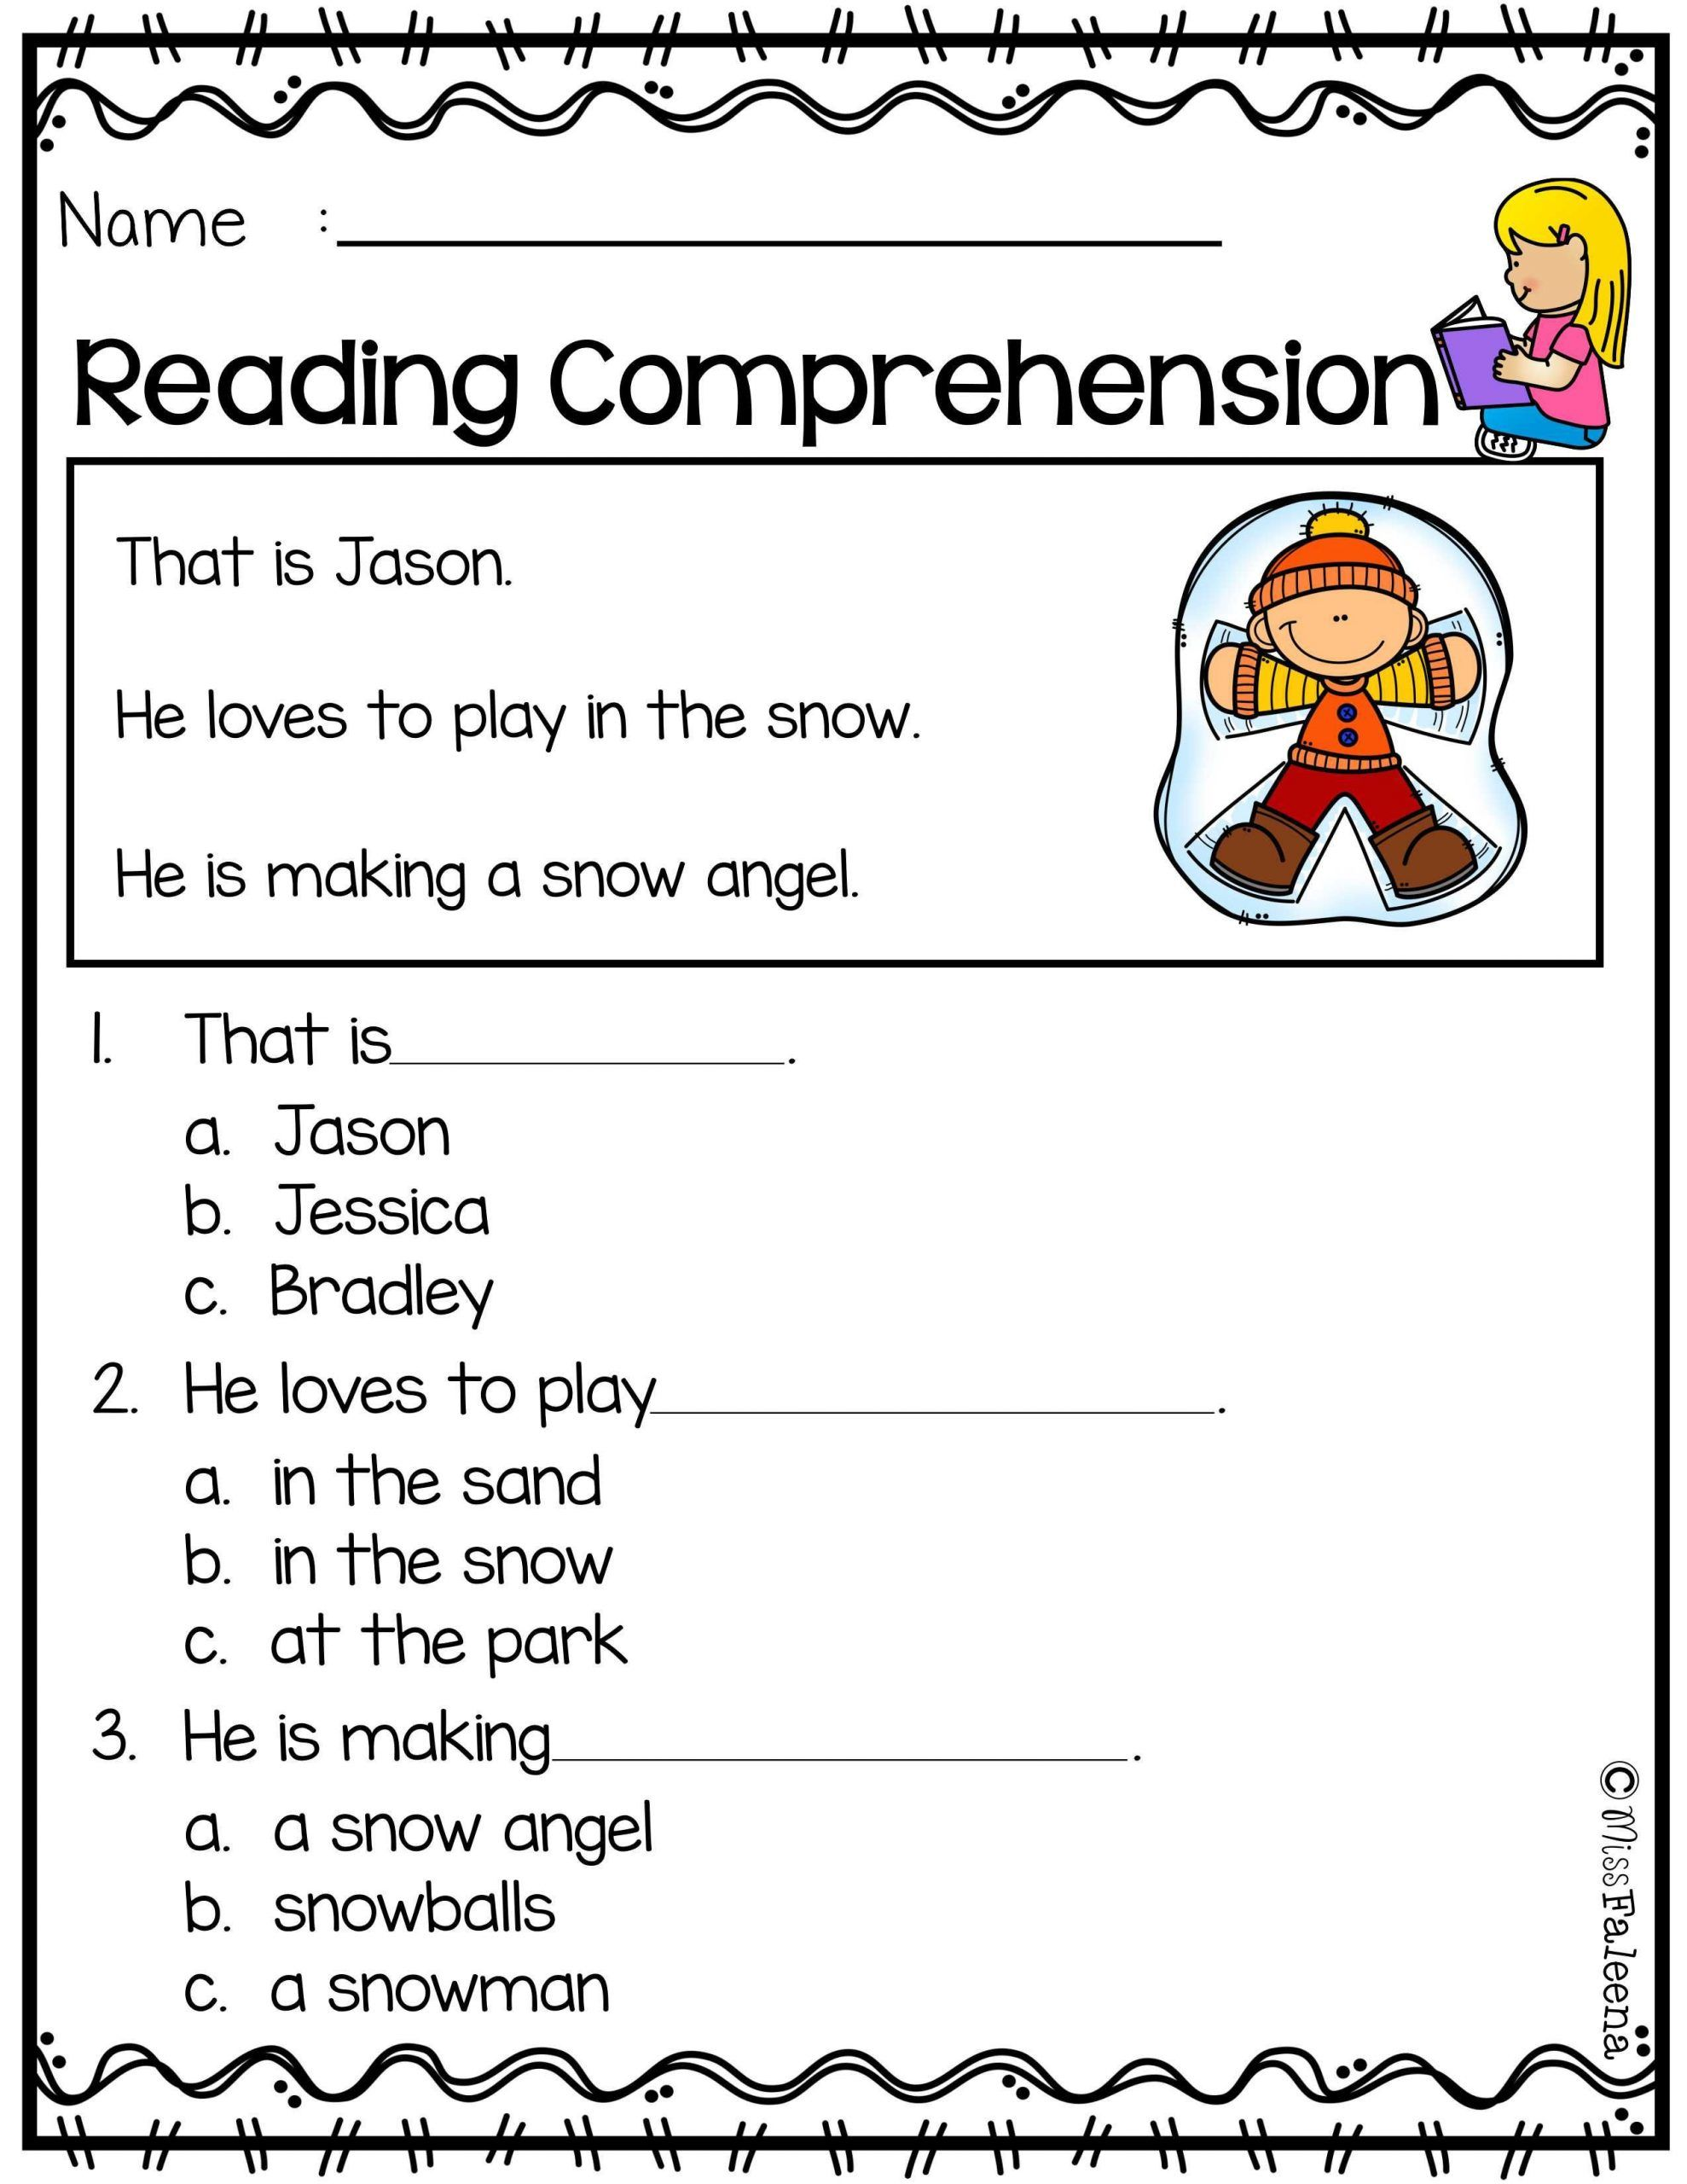 20 Kindergarten Reading Comprehension Worksheets